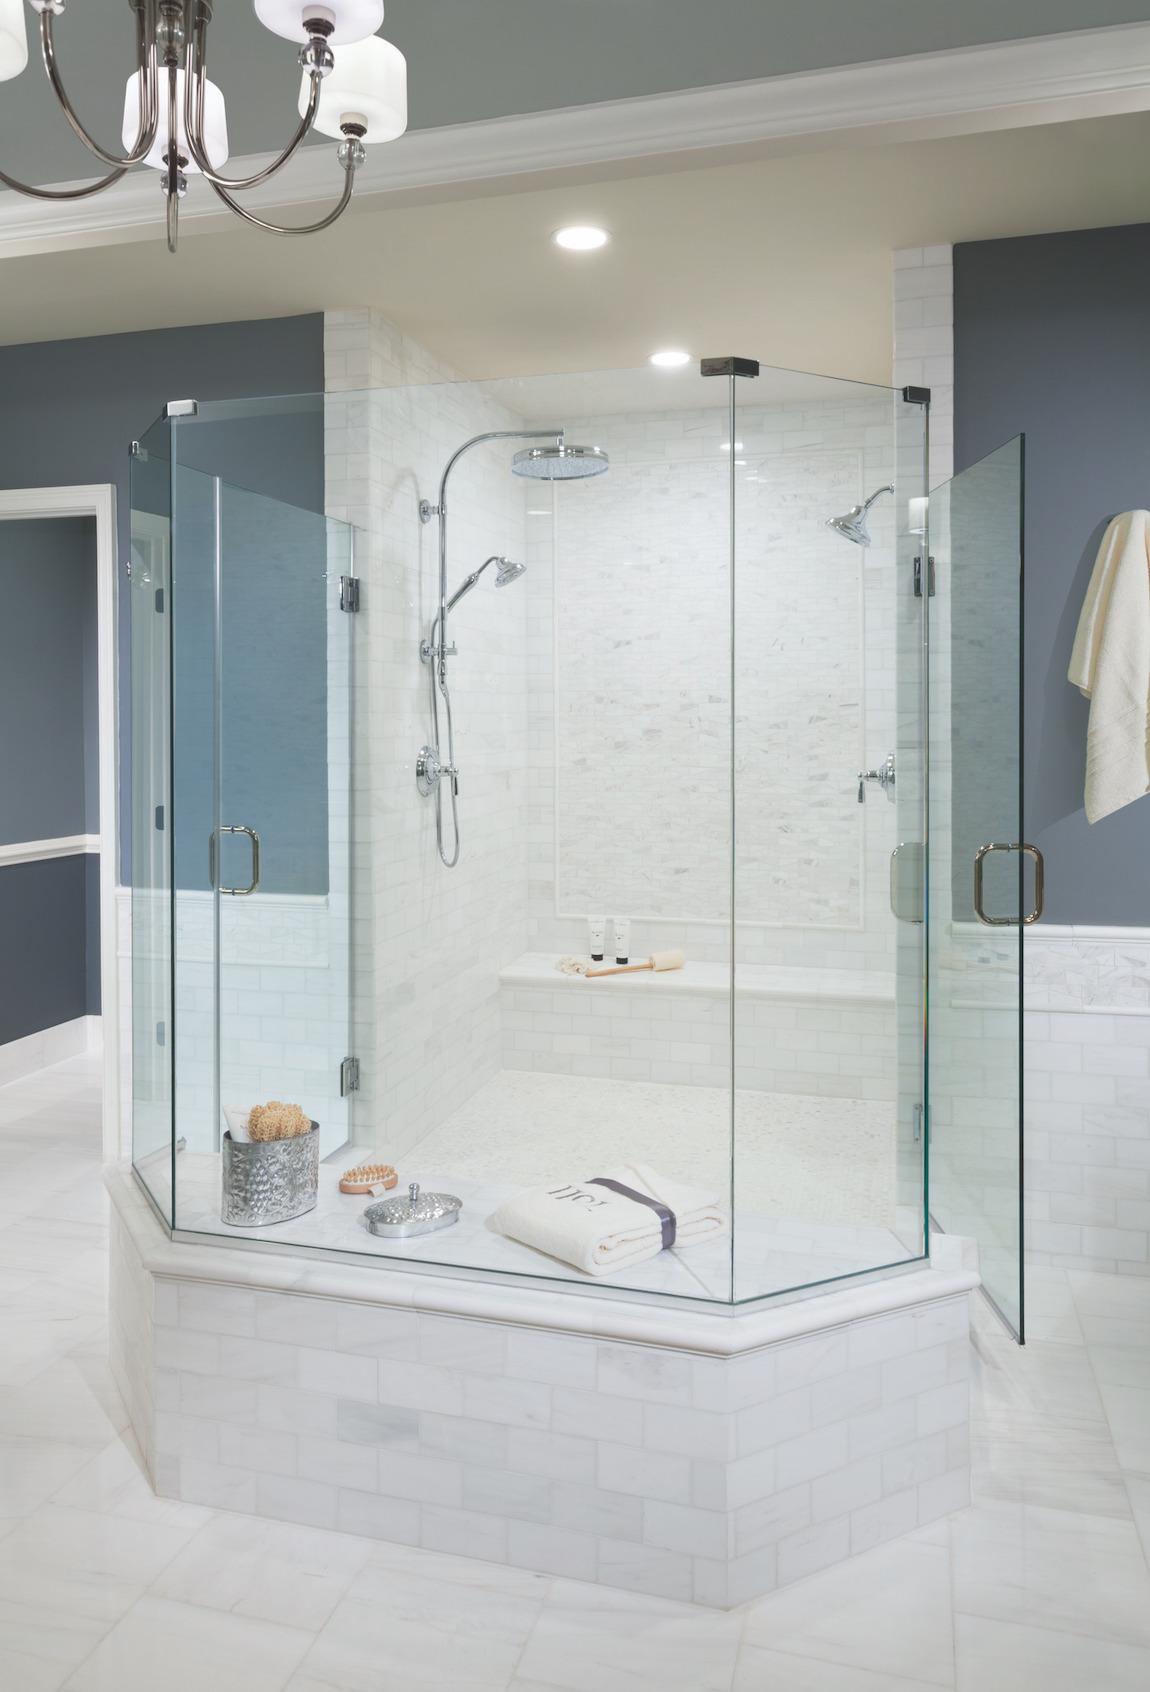 Luxurious showerhead in spacious shower.